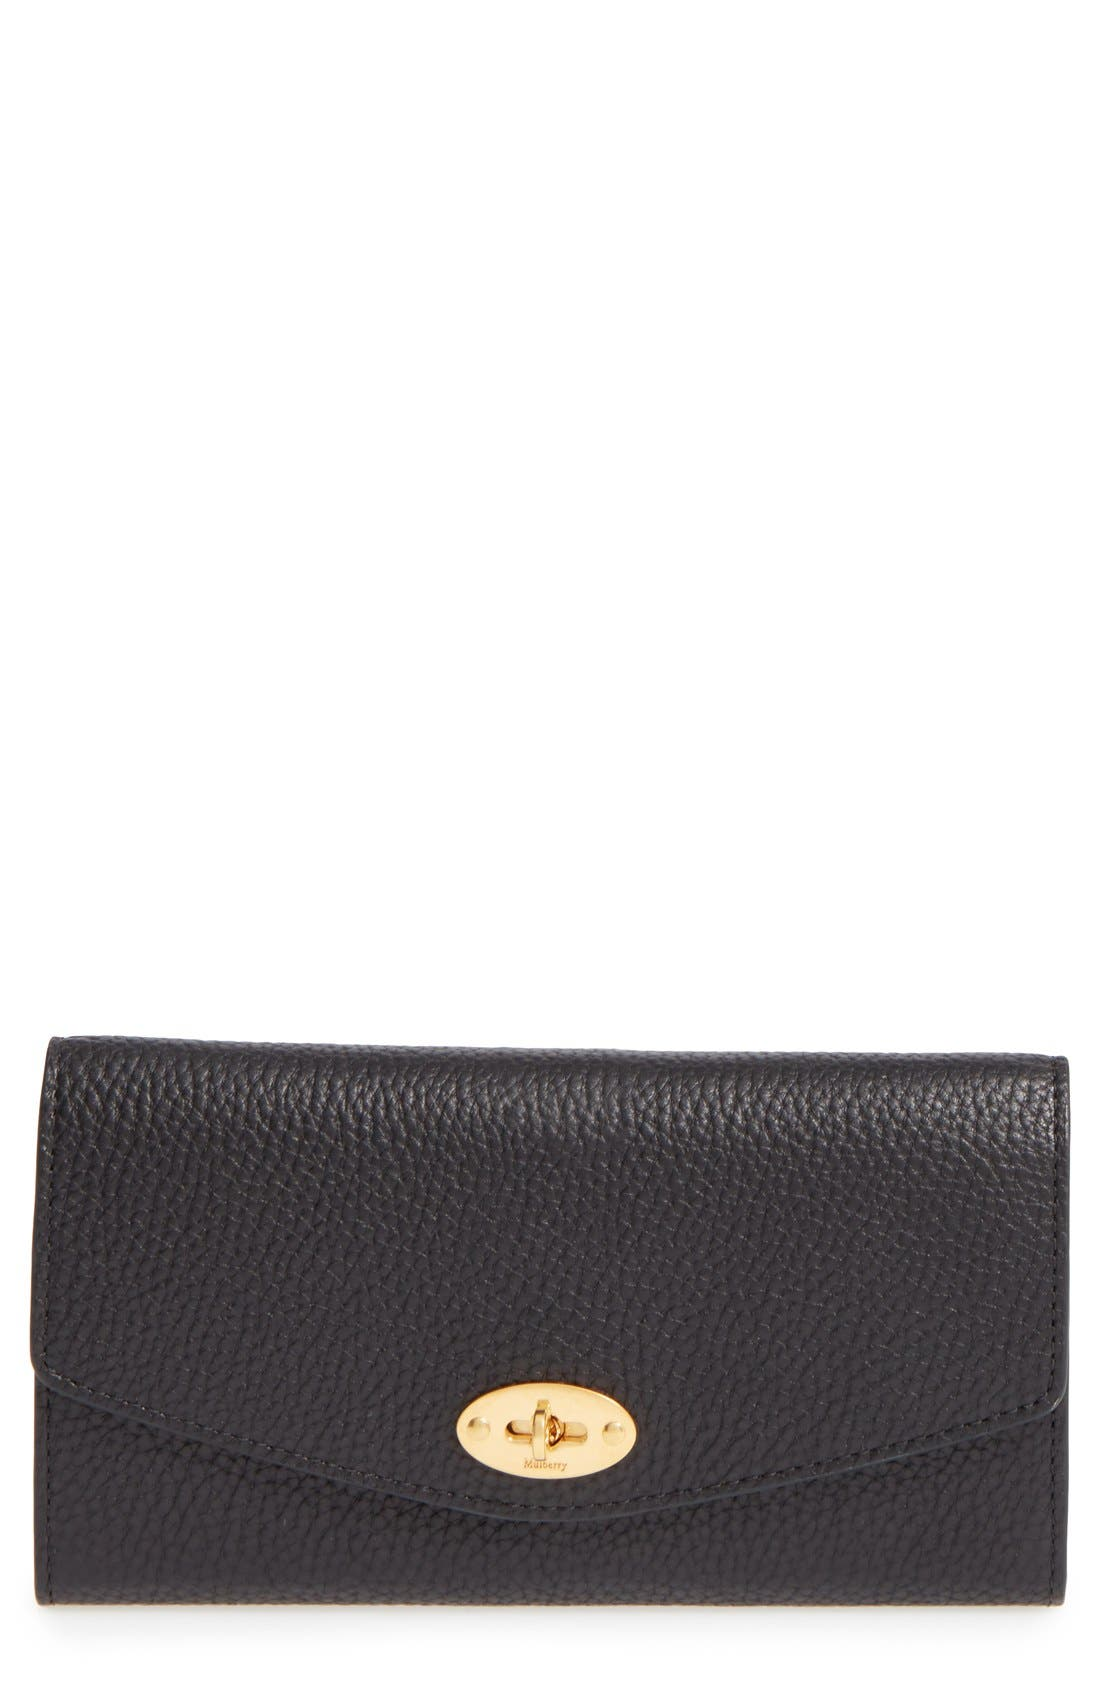 MULBERRY | Women's Mulberry 'Postman'S Lock' Leather Wallet - Black | Goxip